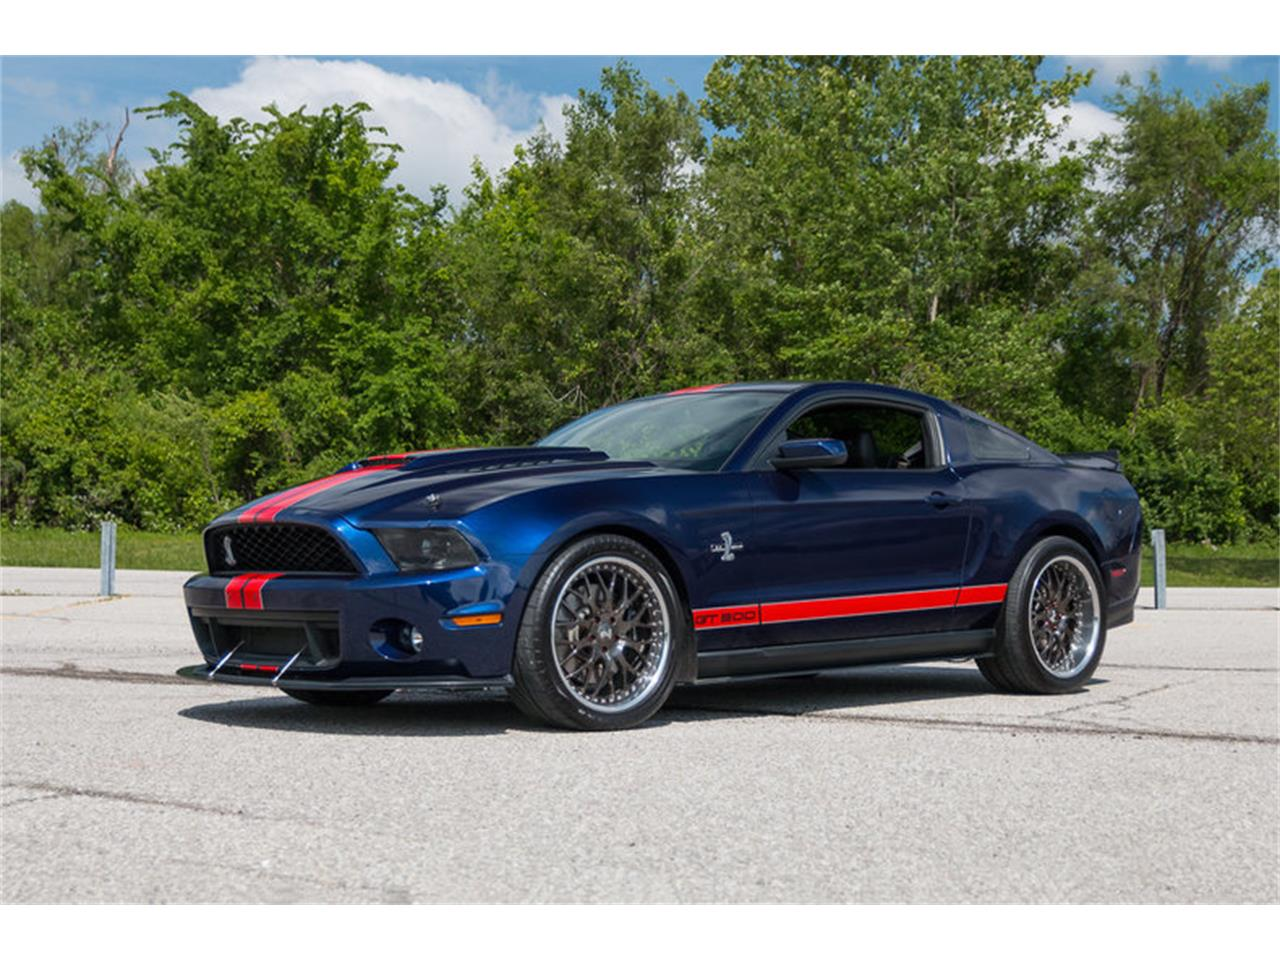 Large Picture of '11 Shelby GT500 located in Missouri Offered by Fast Lane Classic Cars Inc. - L3G7